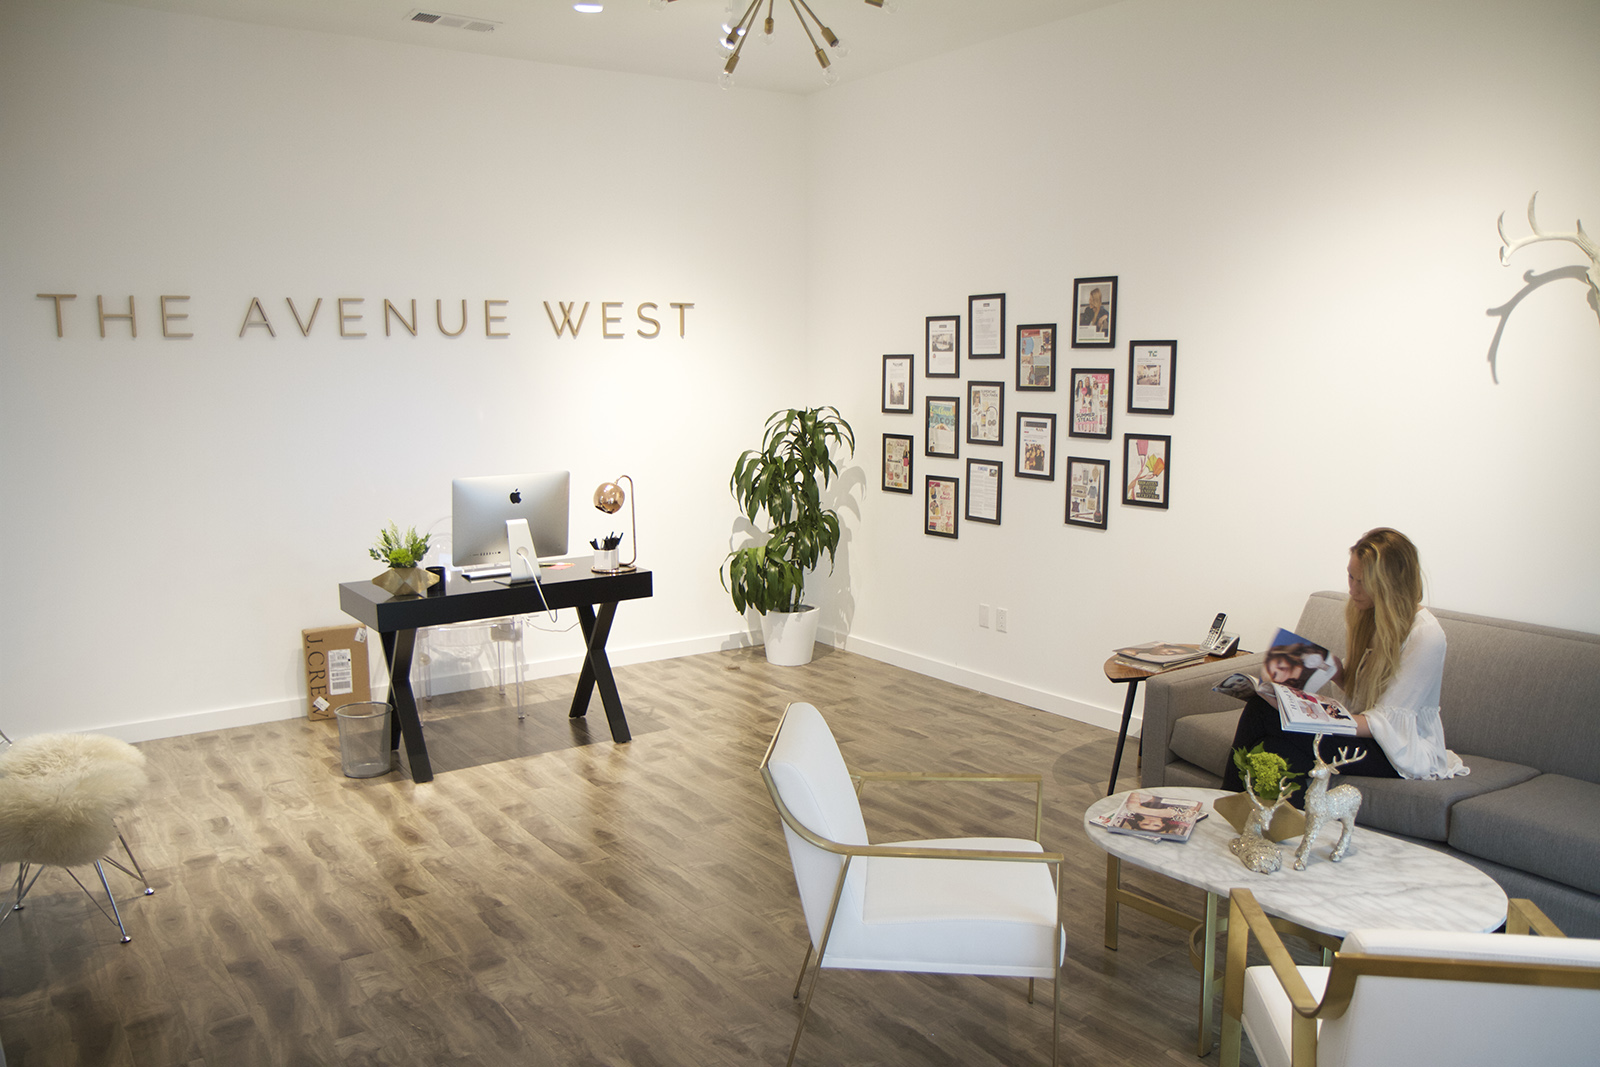 PR Agency Avenue West